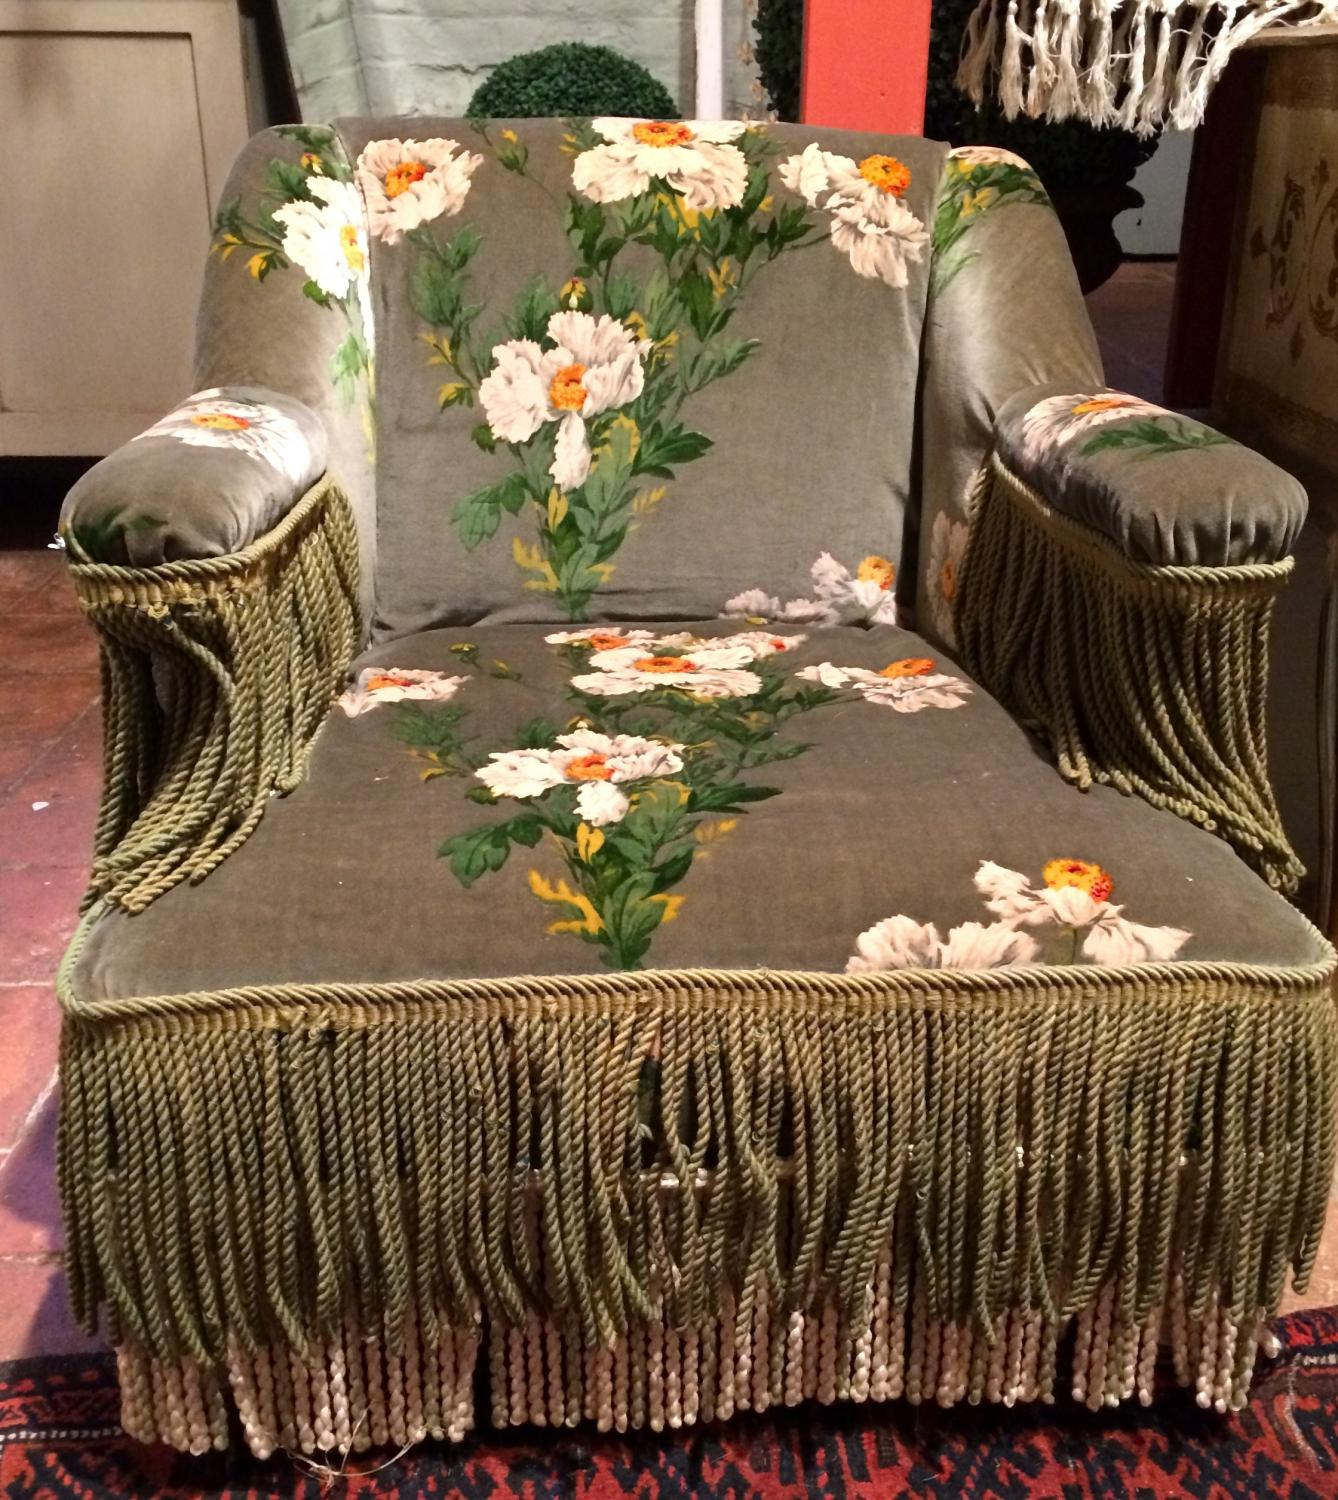 Armchair with vintage floral fabric